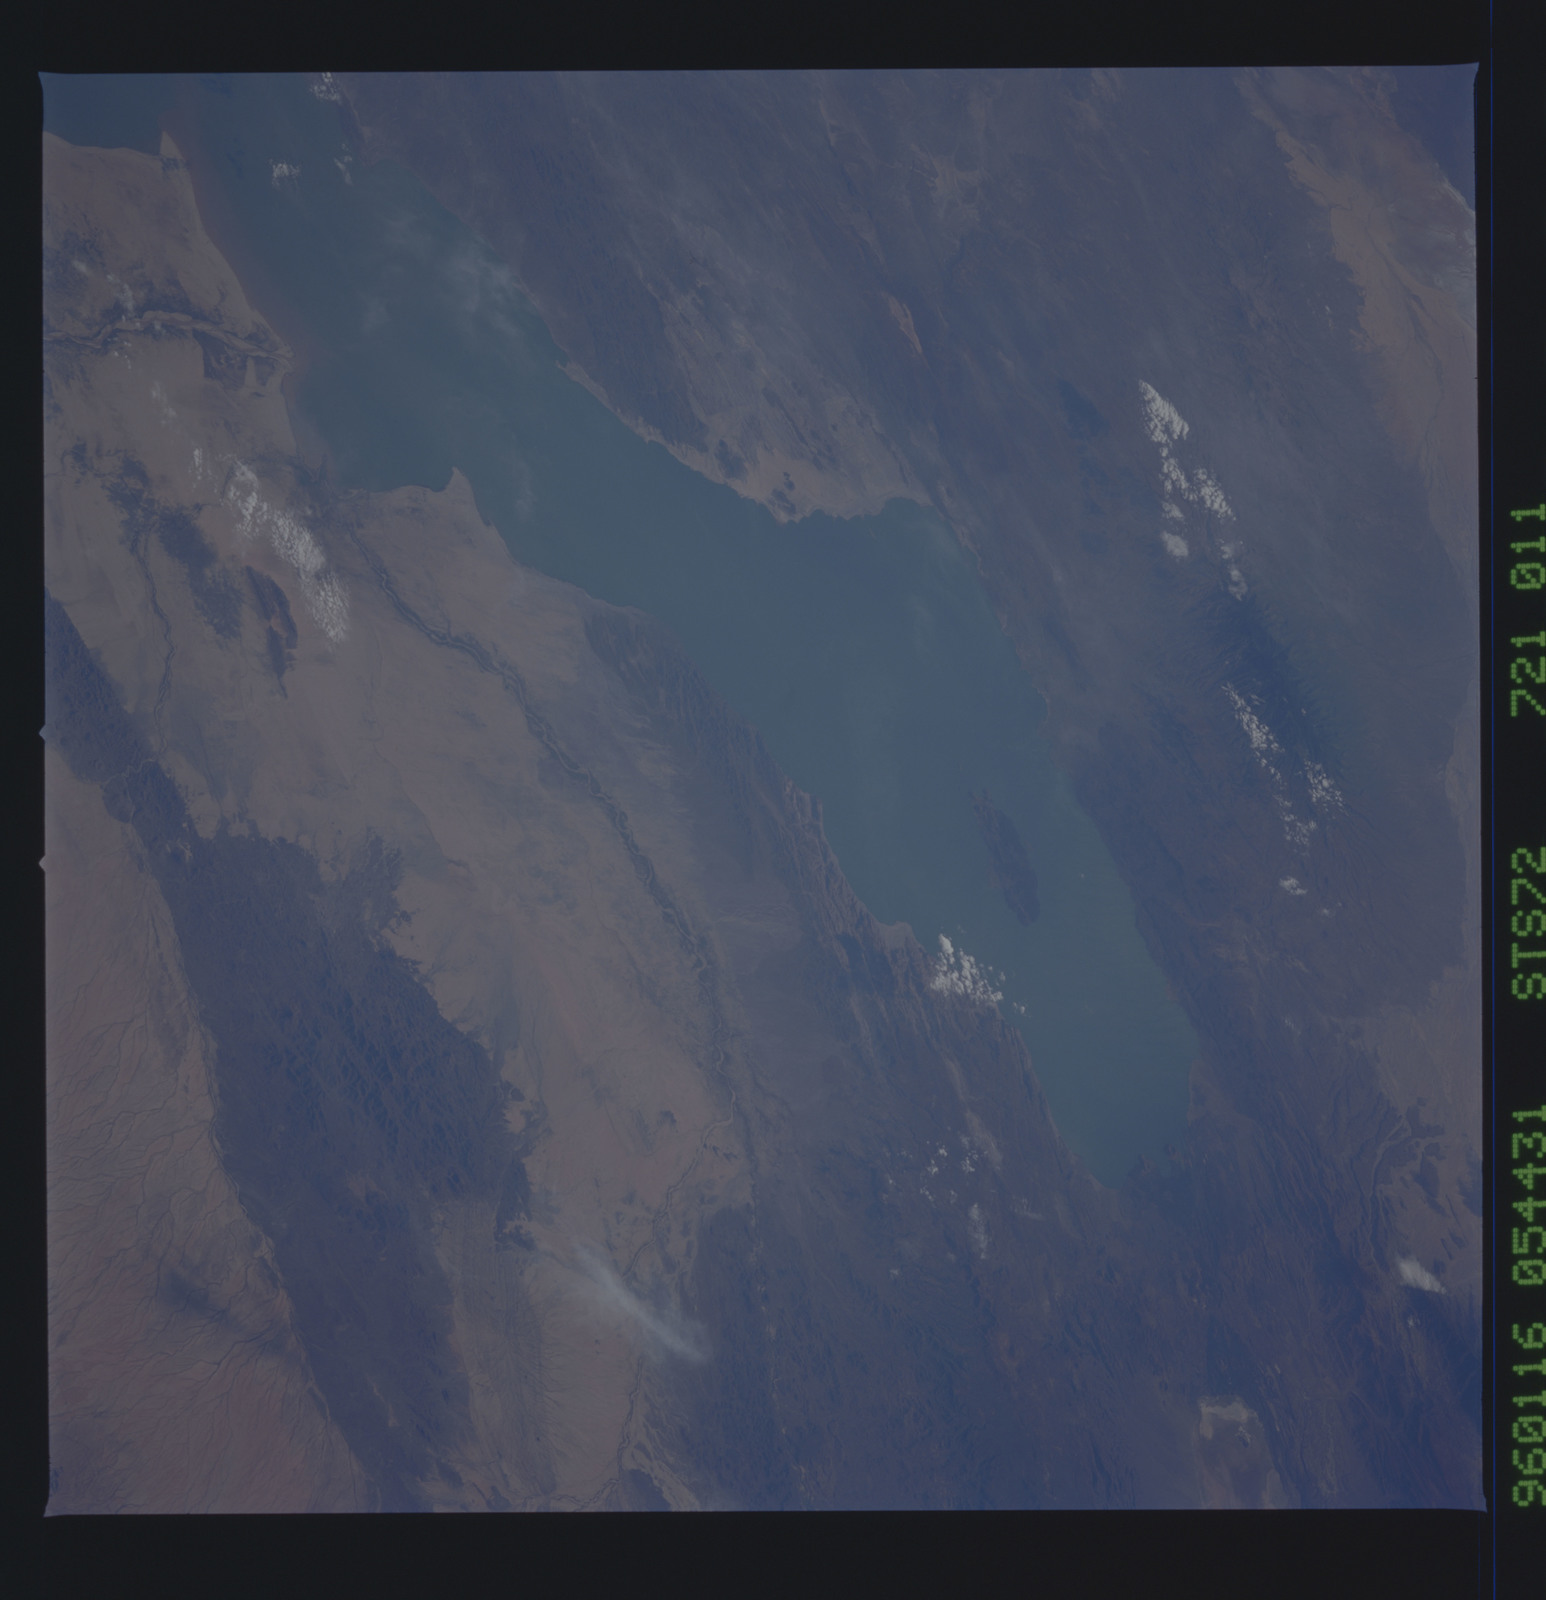 STS072-721-011 - STS-072 - Earth observations taken from shuttle orbiter Endeavour during STS-72 mission